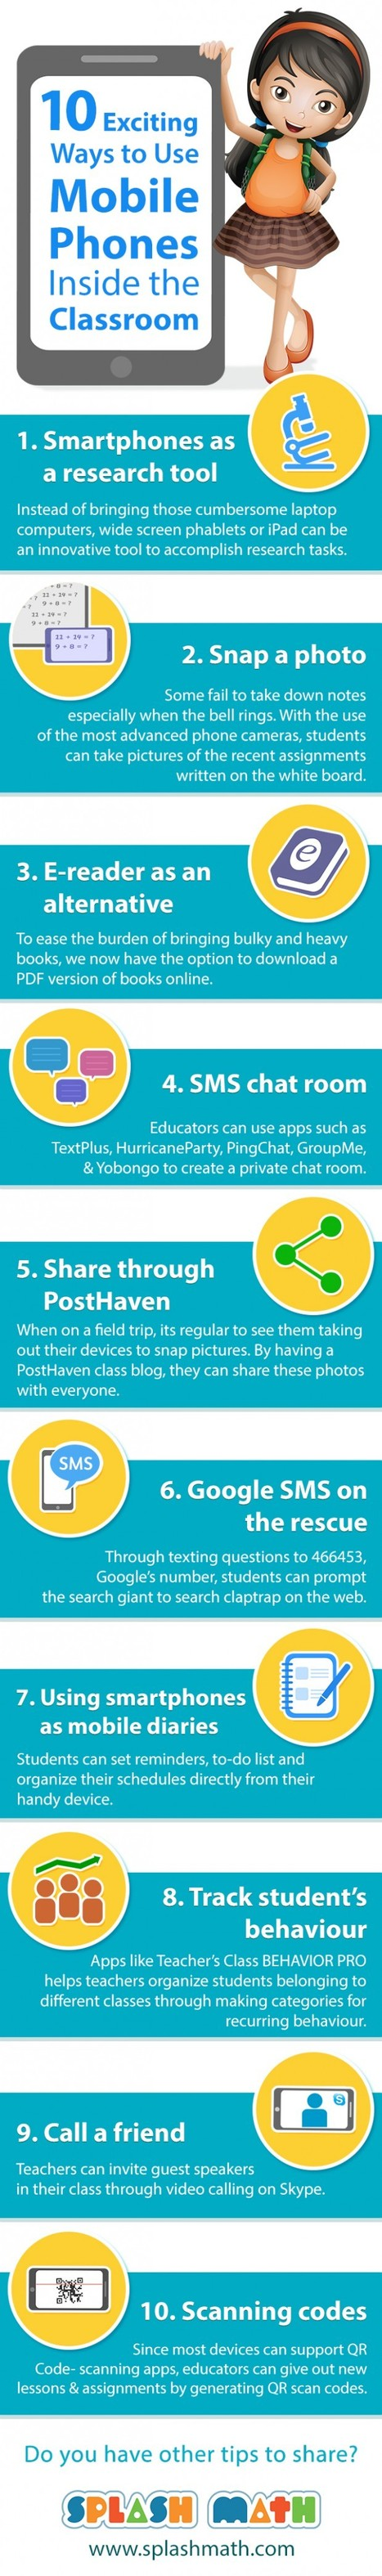 10 Exciting Ways to Use Mobile Phones In the Classroom Infographic | e-Learning Infographics | E-learning | Scoop.it